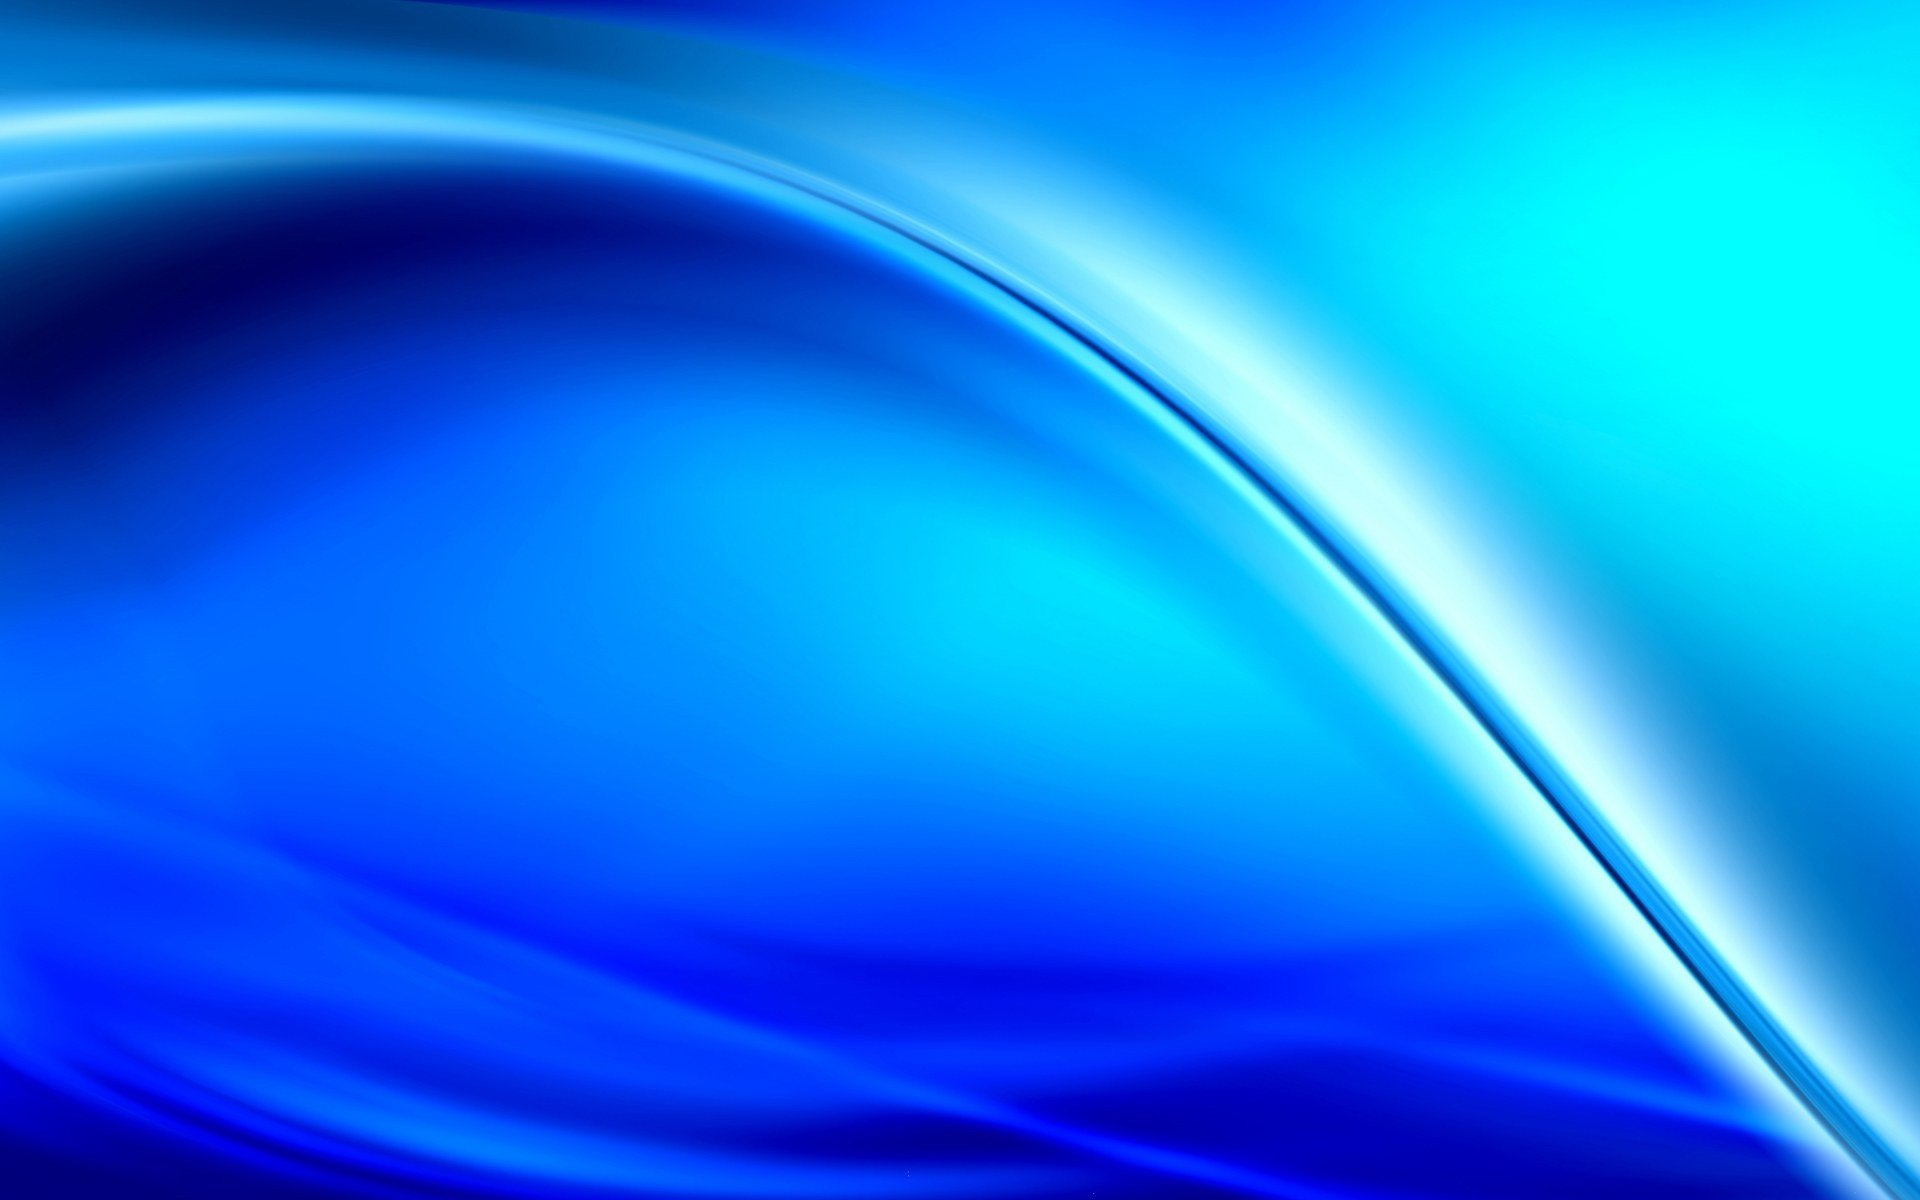 Blue Swirl Ipad Wallpaper Background And Theme: Blue 3d Wallpaper